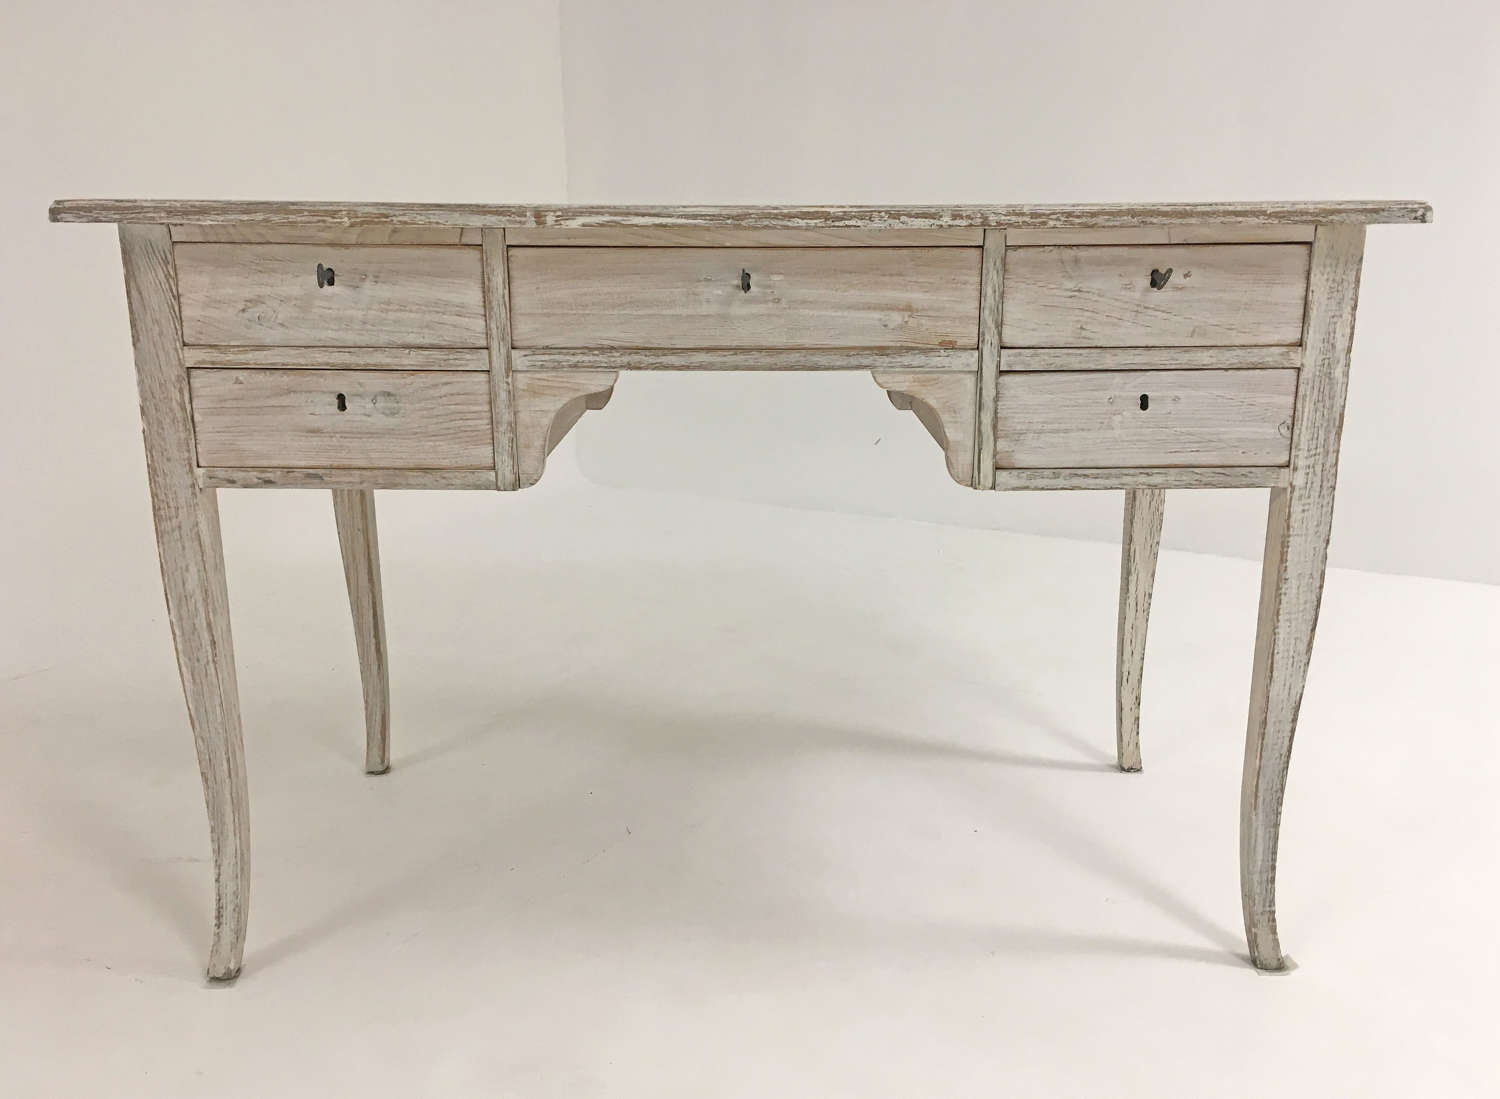 Swedish 20th c Pine Desk with 5 Drawers - circa 1950